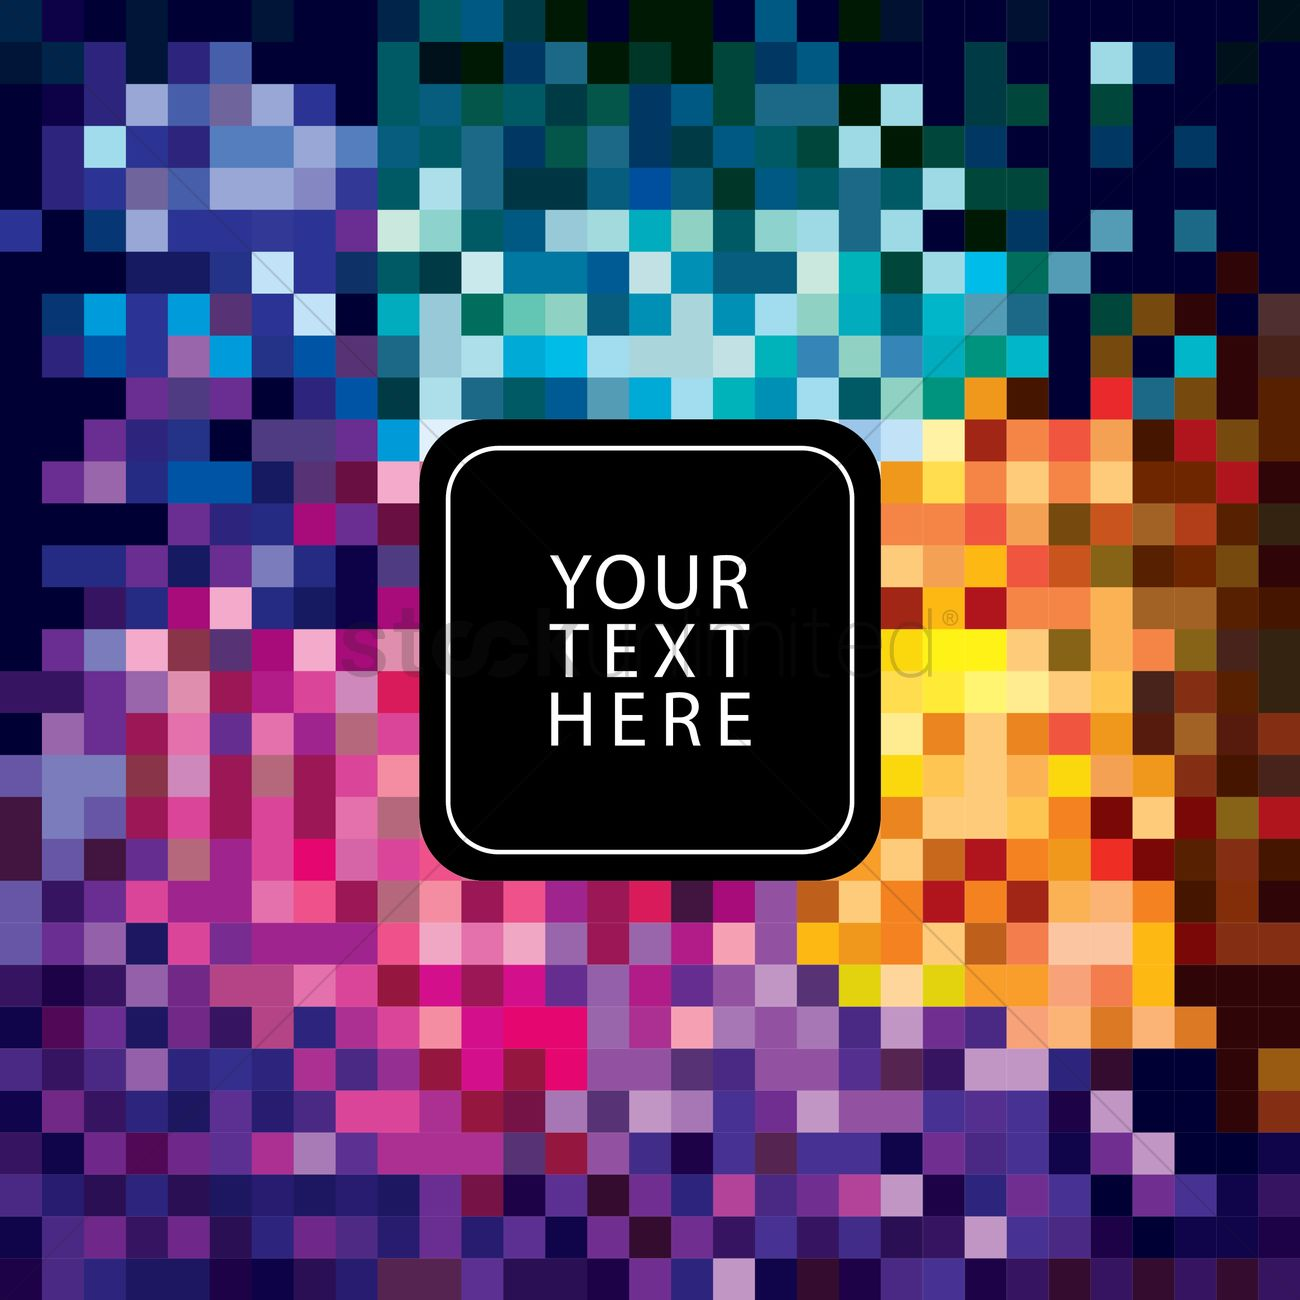 Abstract pixelated background Vector Image - 1527449